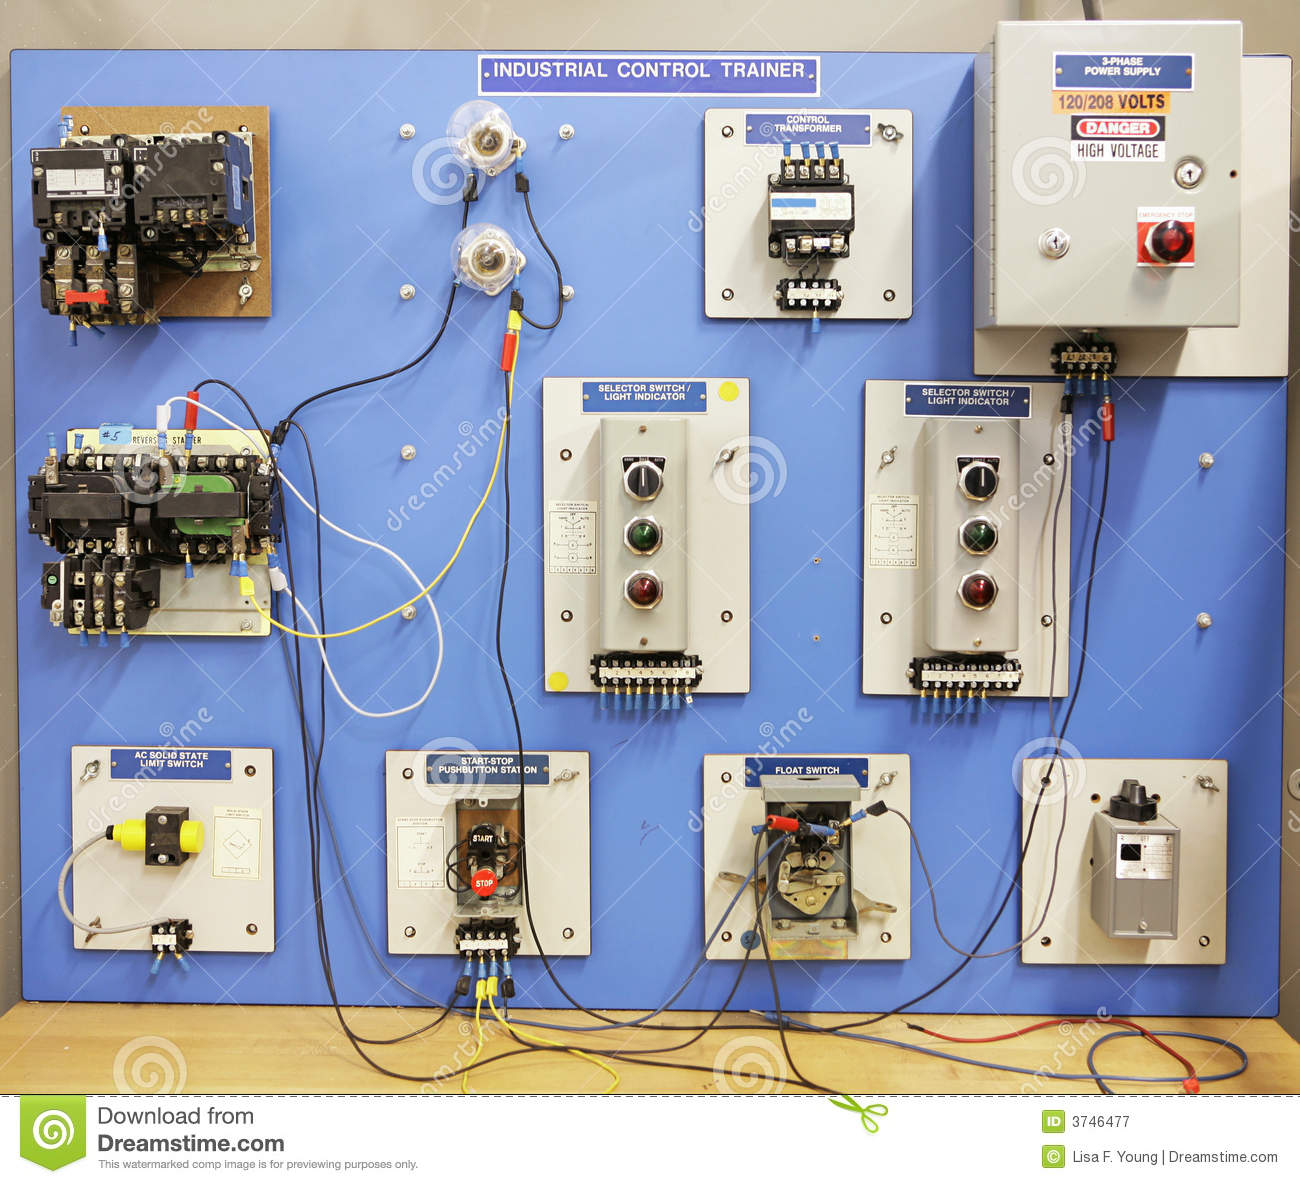 Adult Ed Industrial Control Trainer Royalty Free Stock